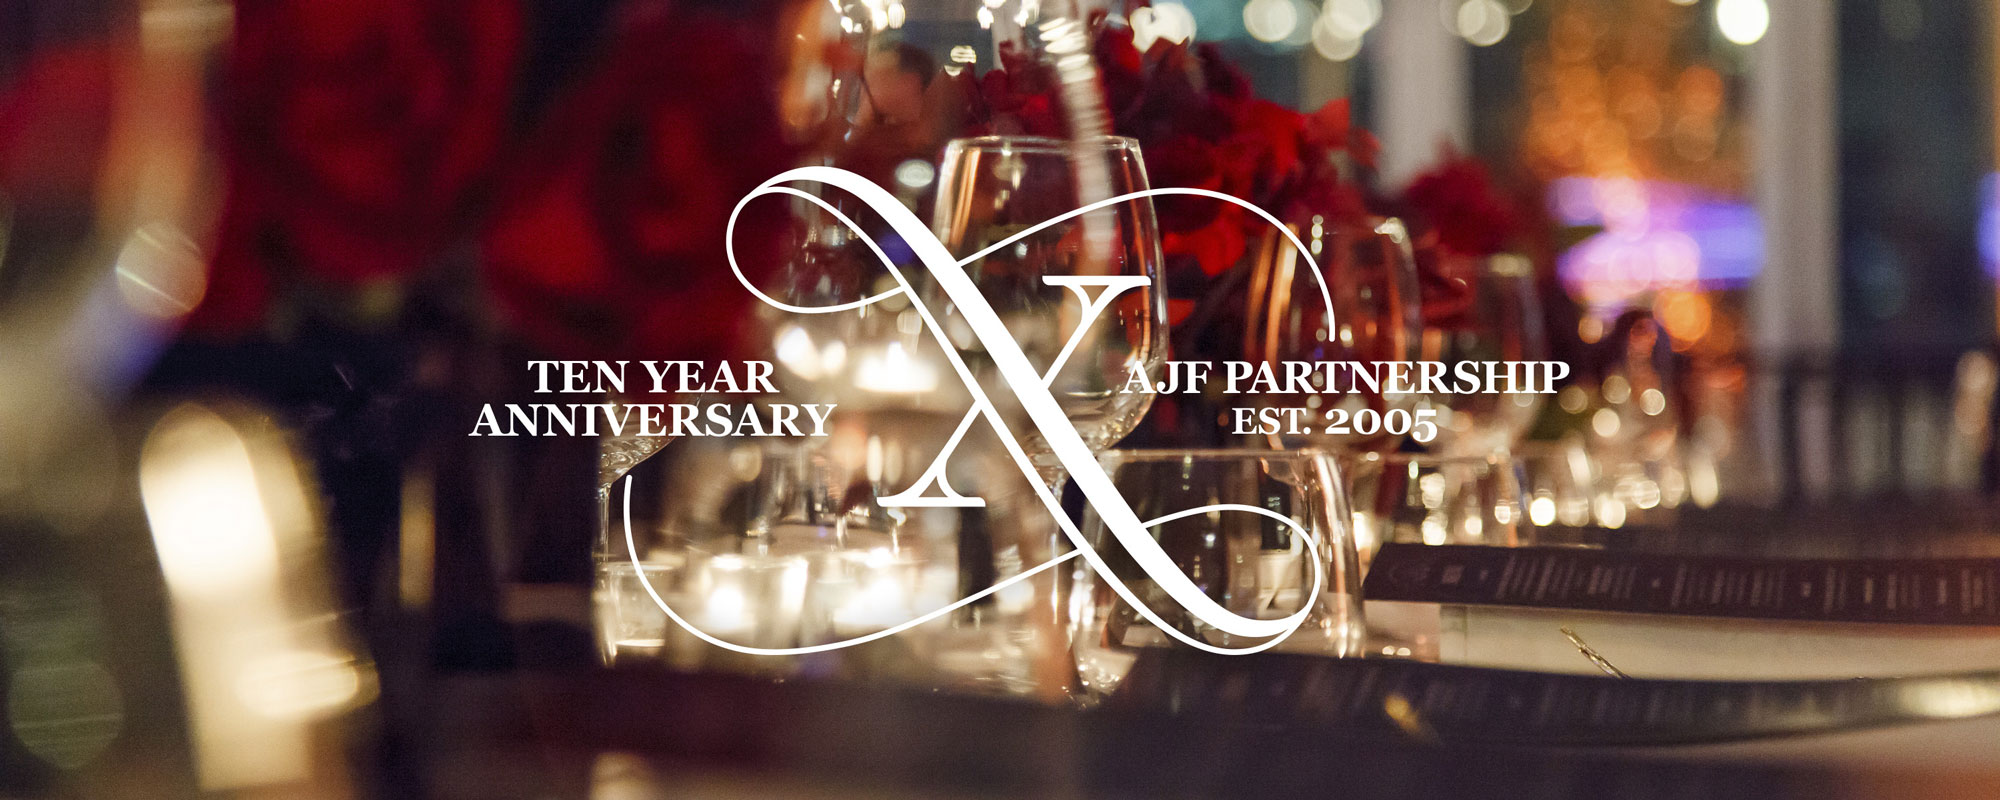 AJF Partnership Tenth Anniversary Soiree // Invitations